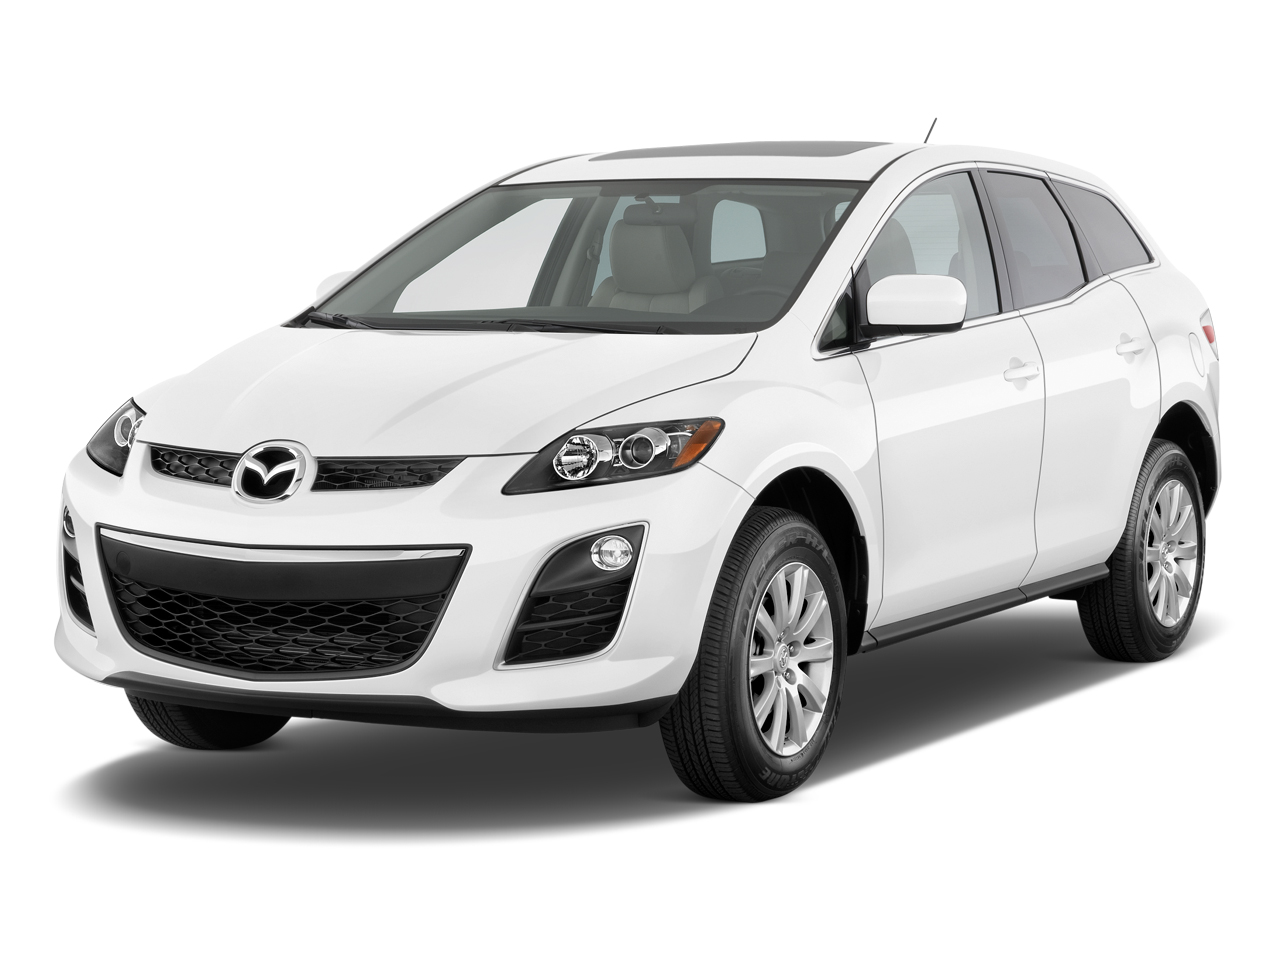 2011 Mazda Cx 7 Review Ratings Specs Prices And Photos The Car Connection